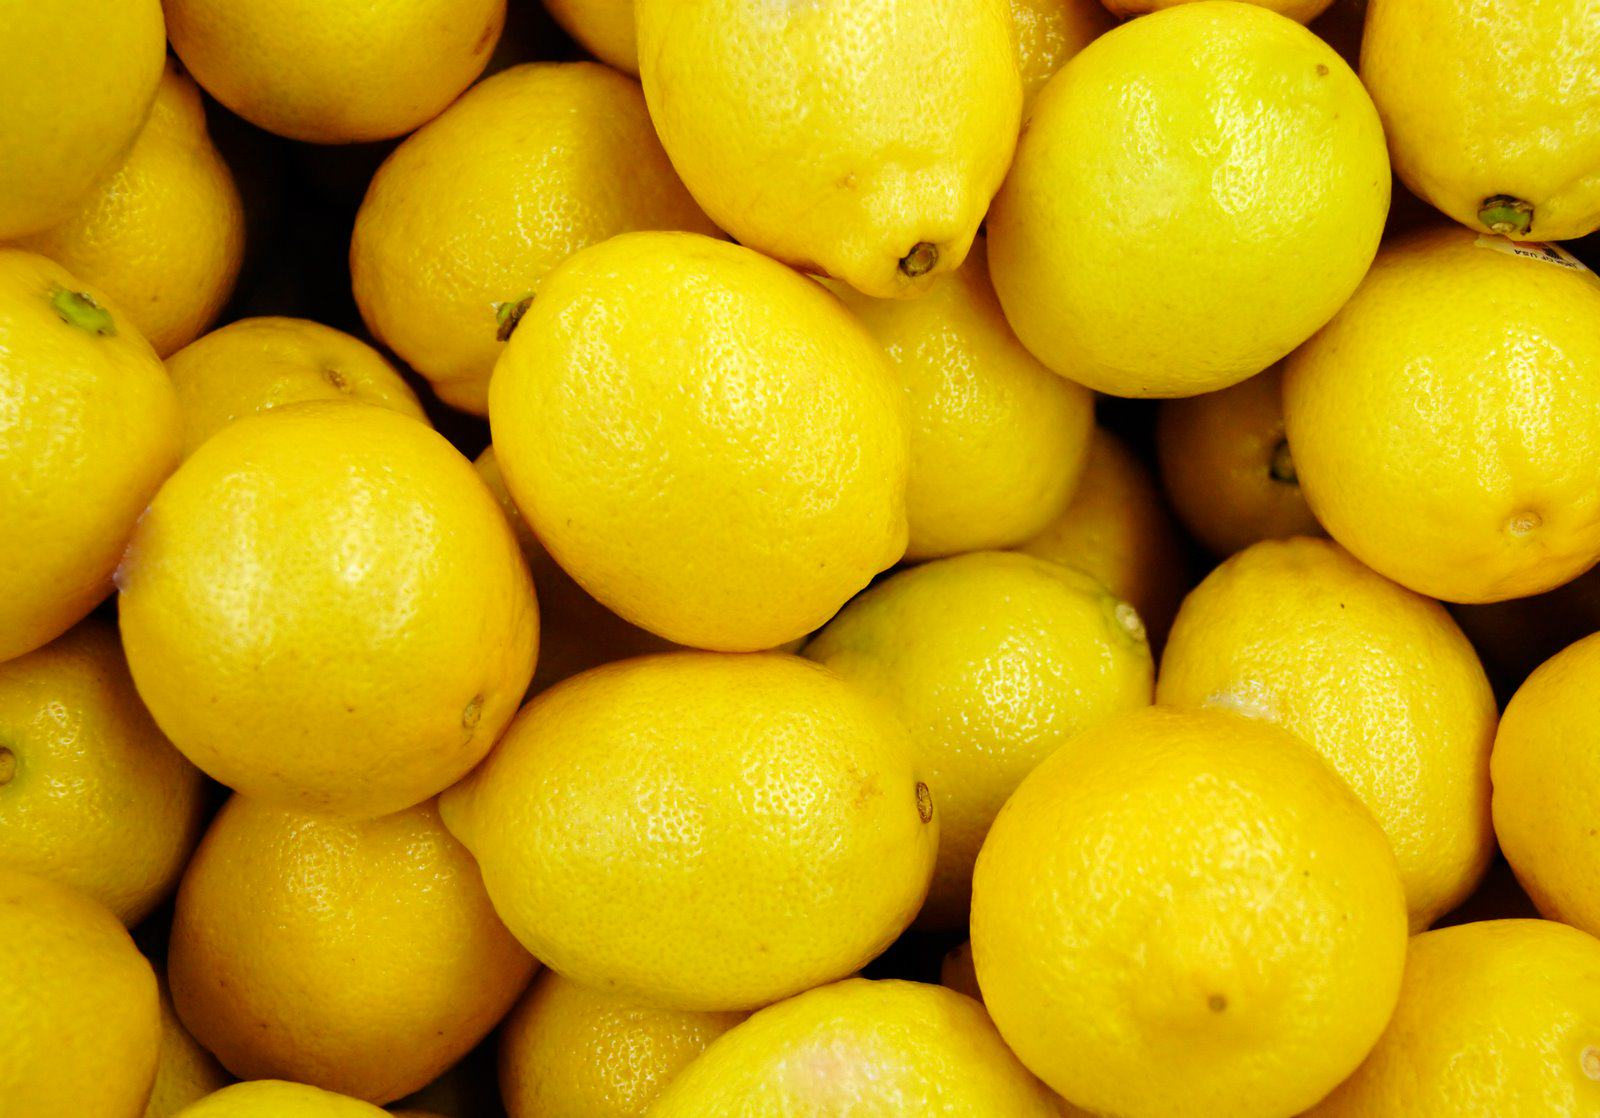 Man With Phobia Of Lemons Kills Friend After Being Taunted 7898517 G 1